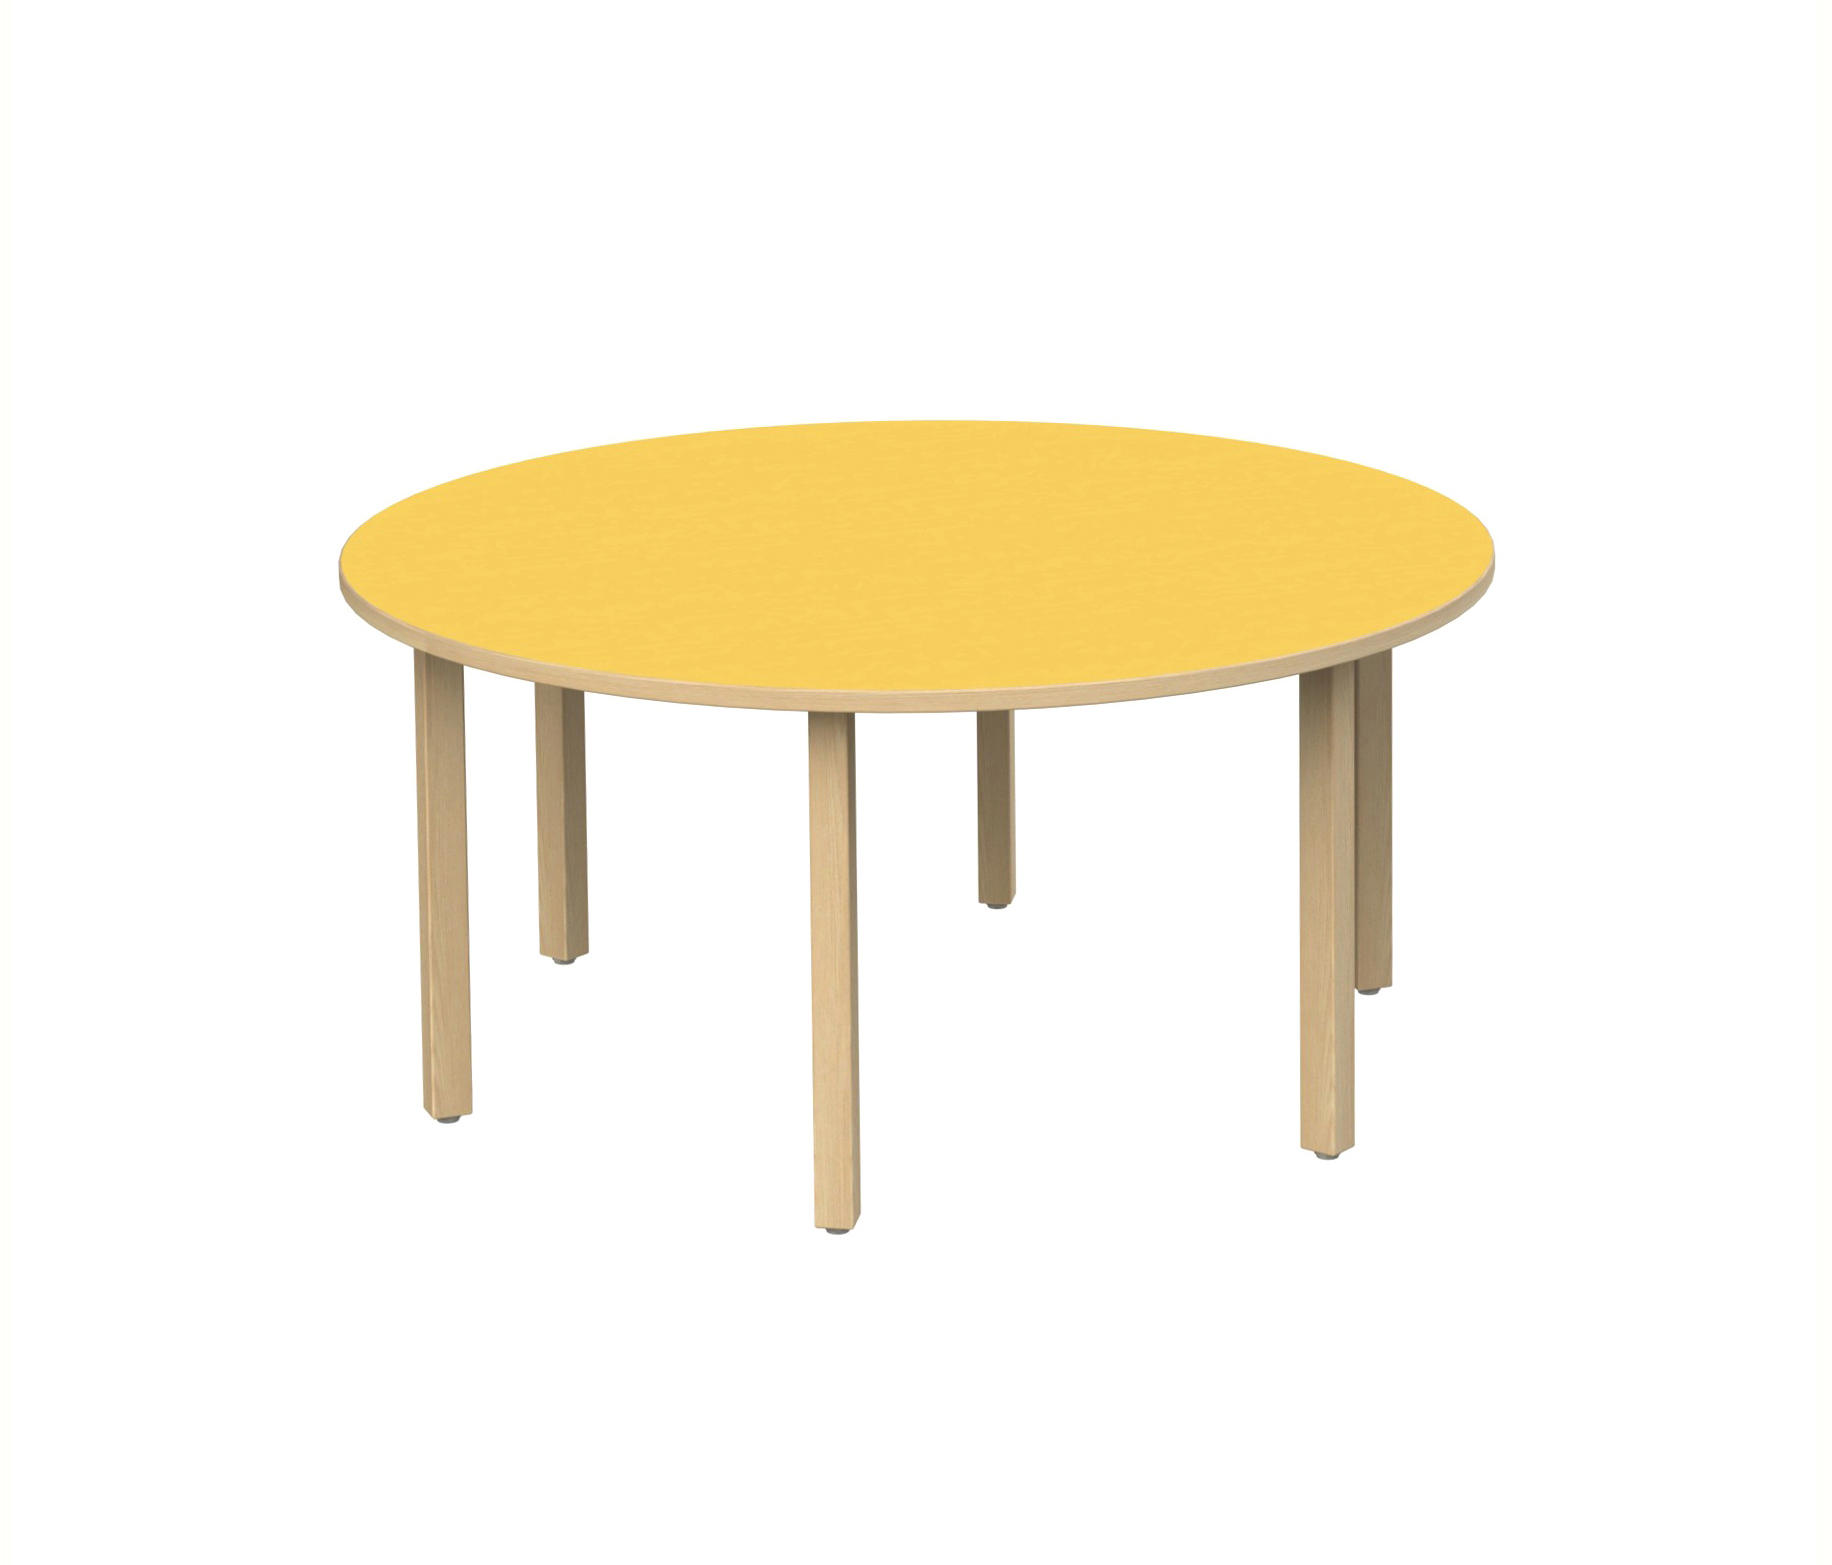 TABLE FOR CHILDREN 1200L60S  Kids tables from Woodi